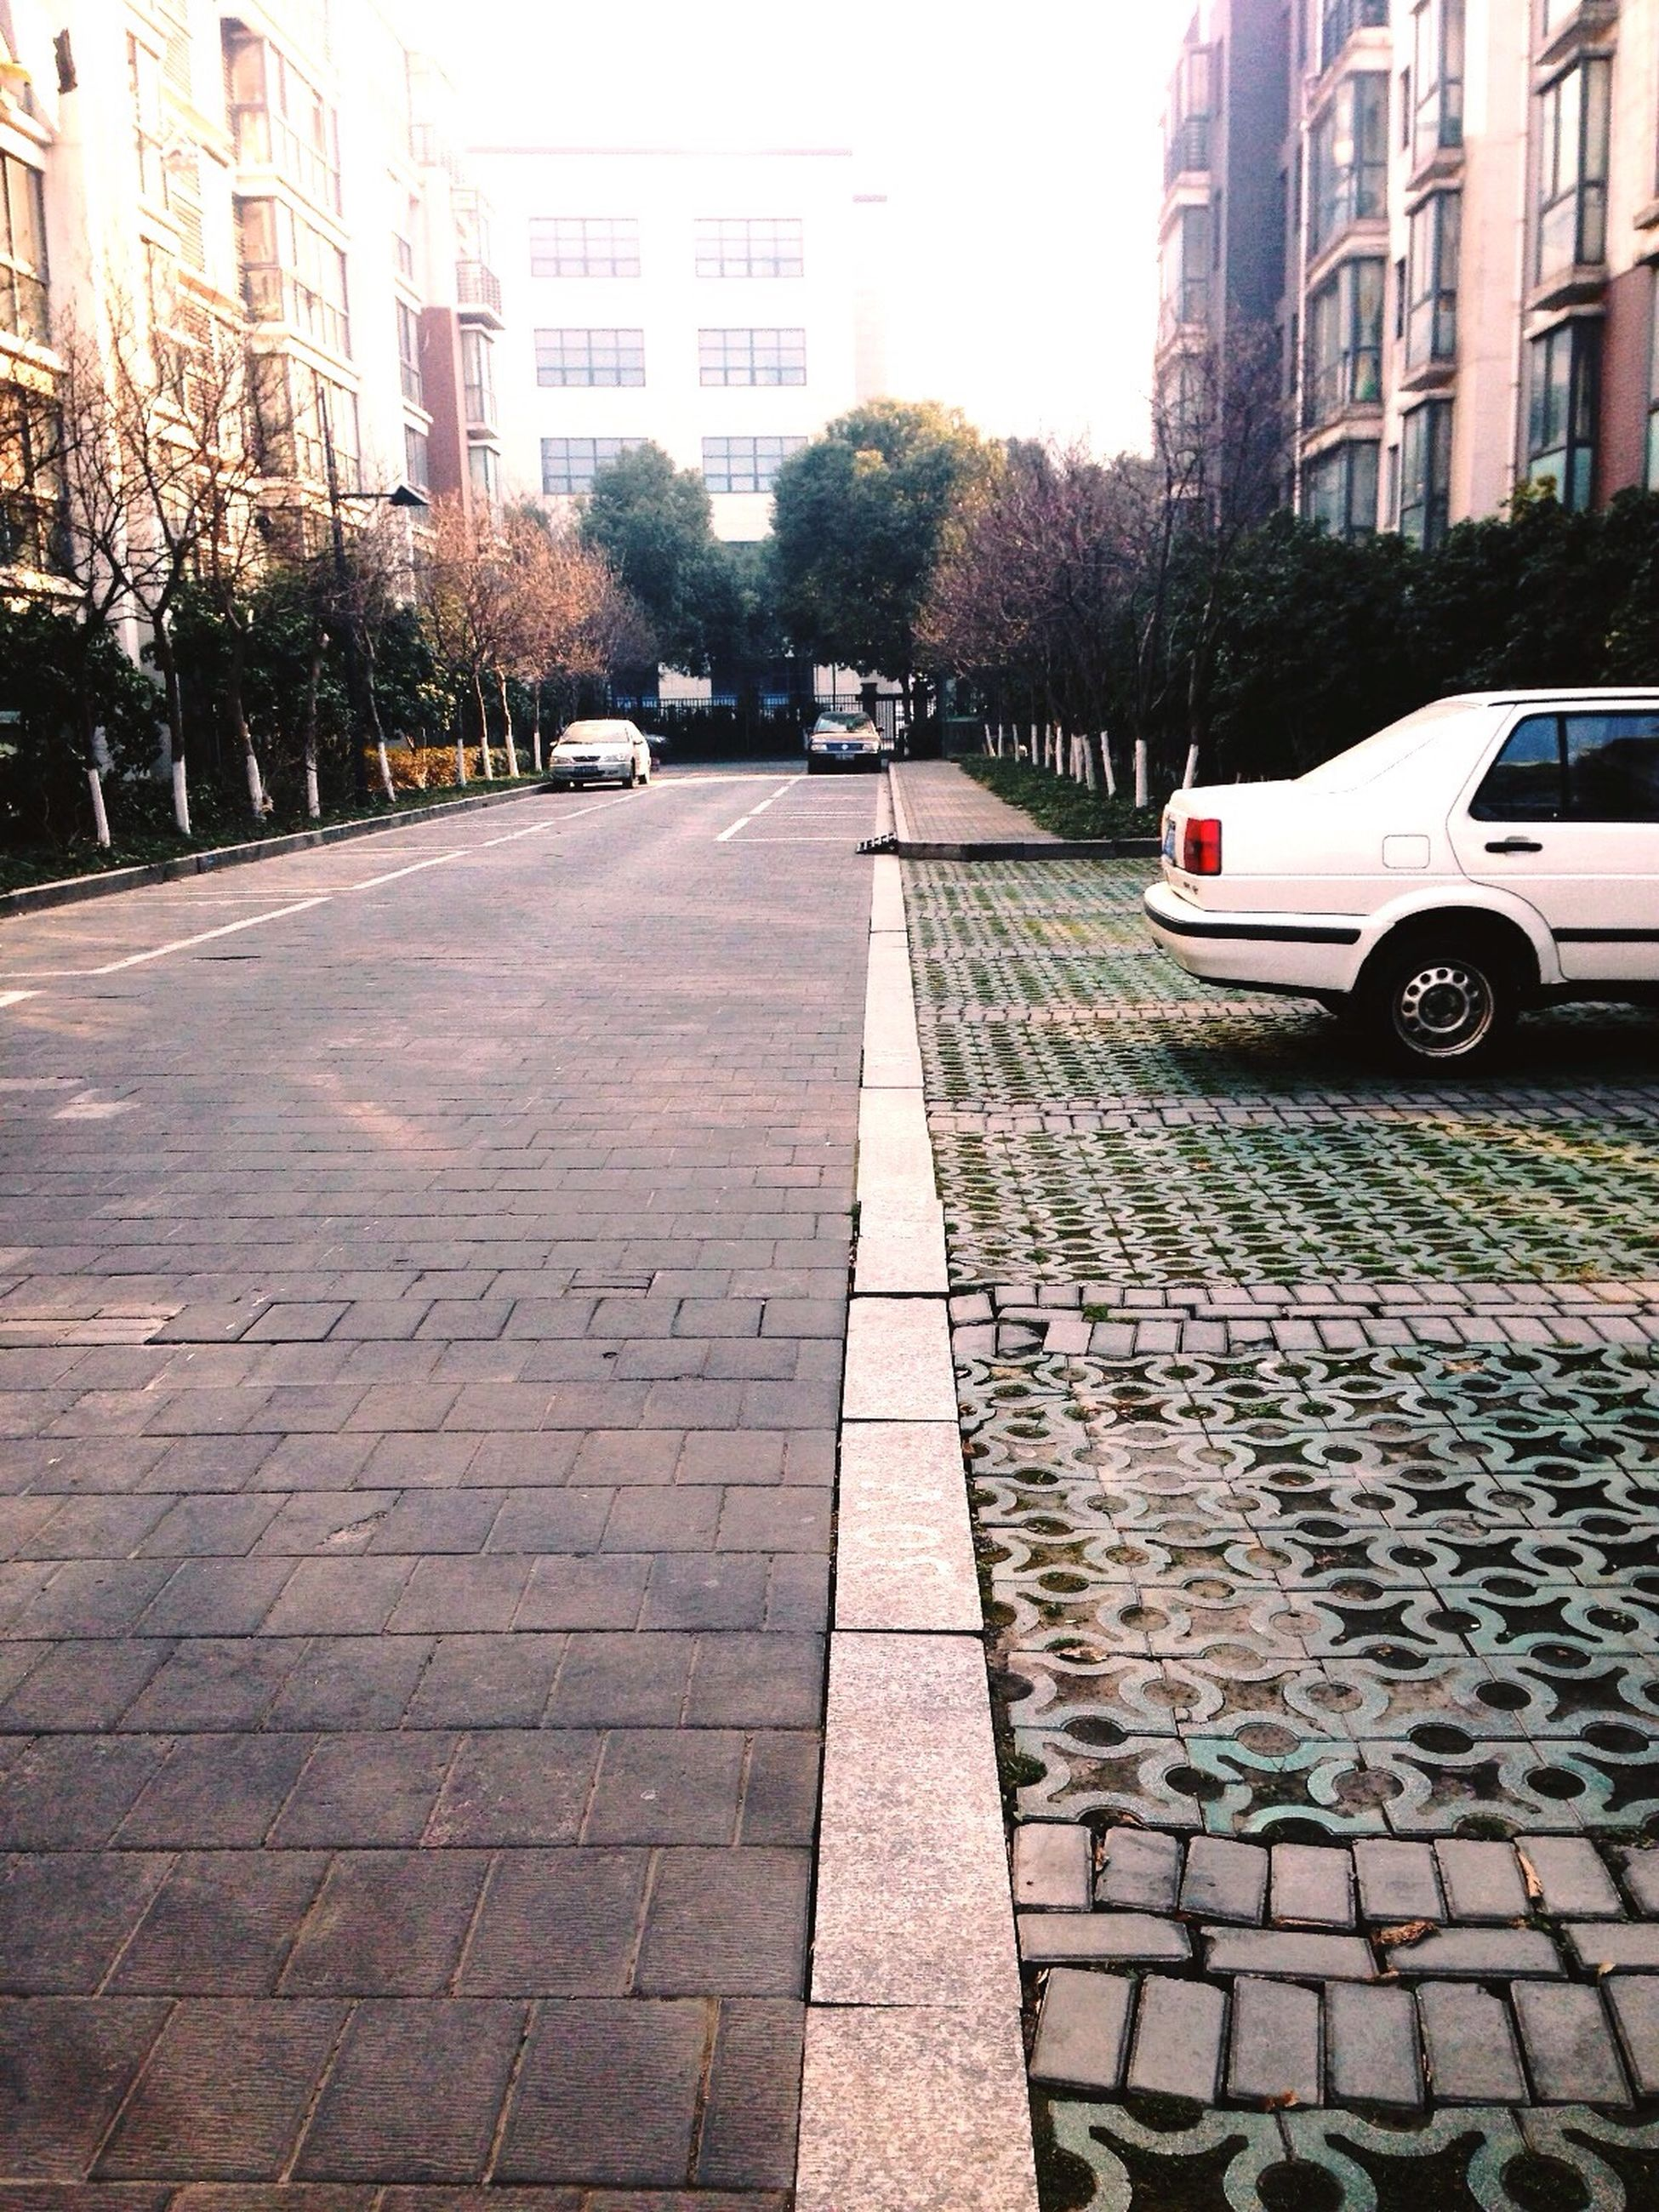 building exterior, architecture, built structure, city, street, the way forward, transportation, car, diminishing perspective, vanishing point, road, city life, building, incidental people, land vehicle, city street, road marking, cobblestone, mode of transport, day